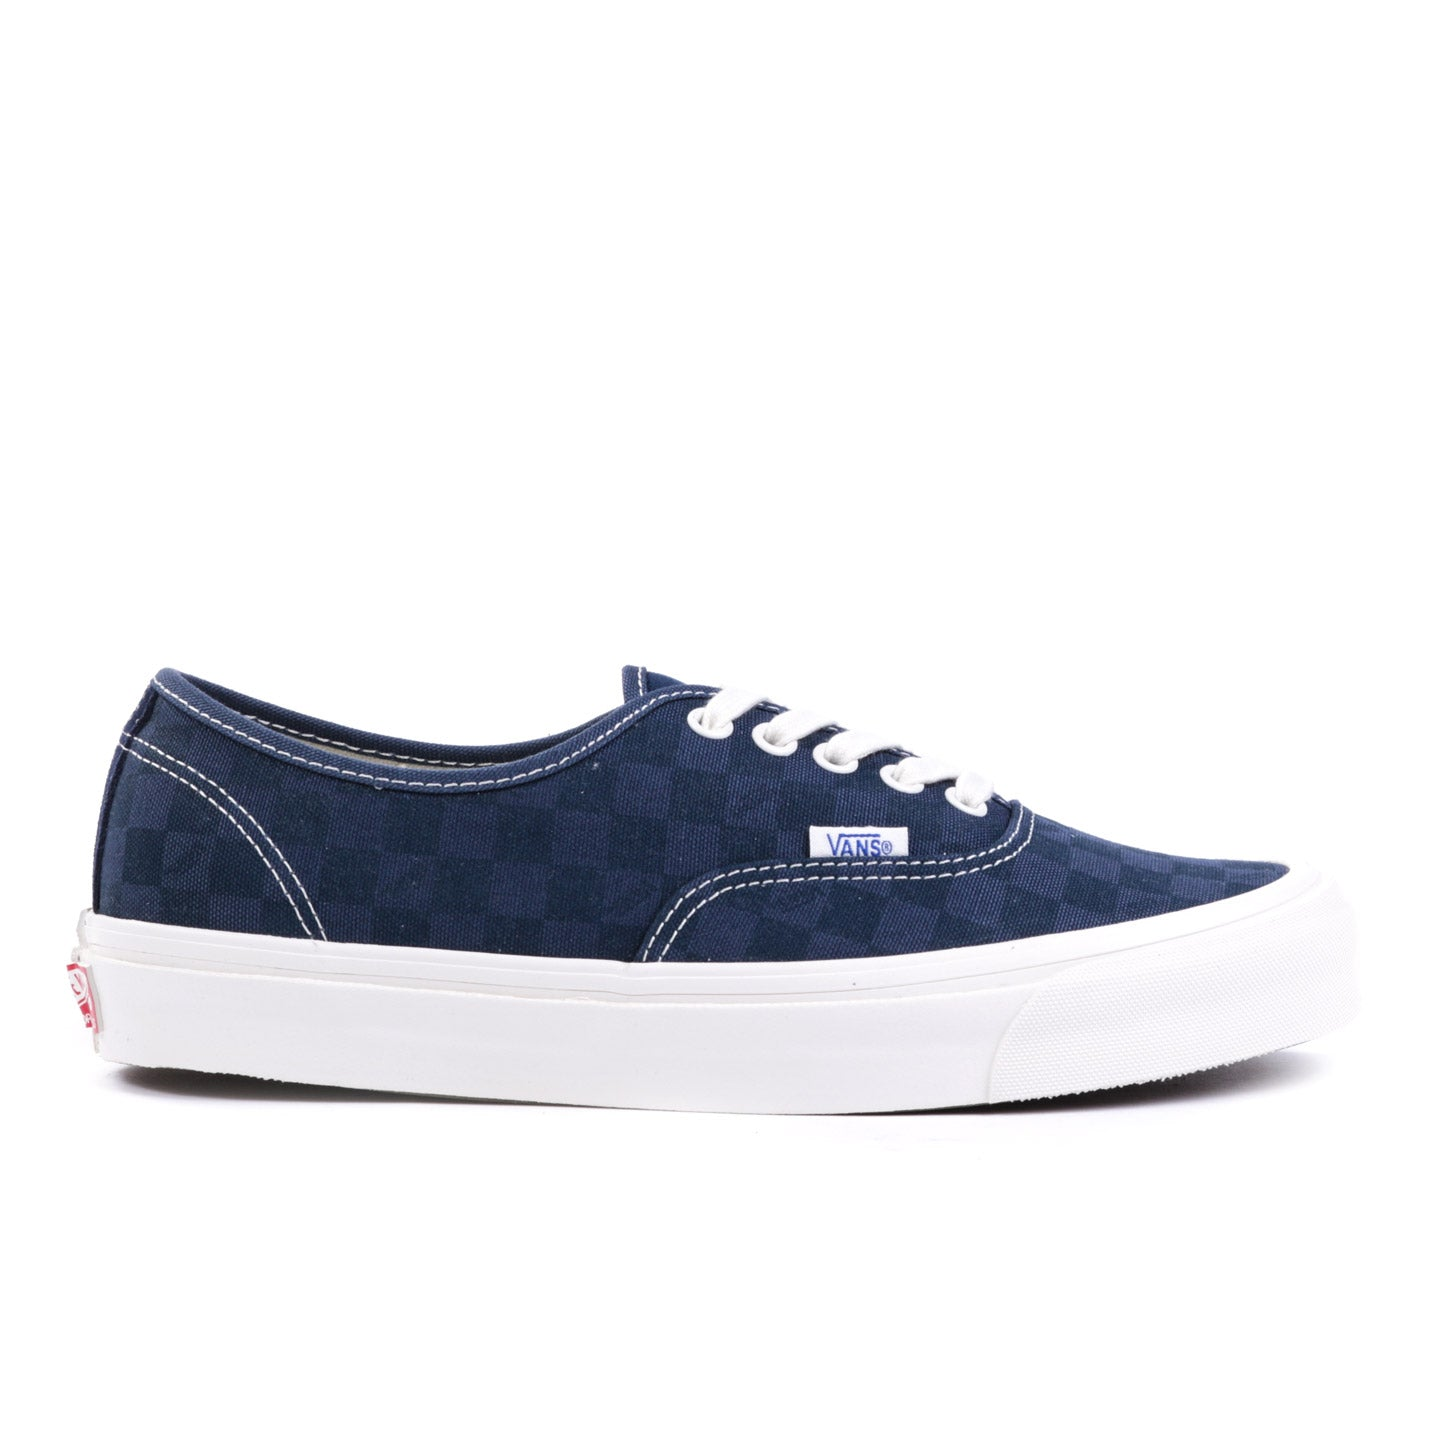 7bd3138d5a VAULT BY VANS OG AUTHENTIC LX CHECKERBOARD MAJOLICA BLUE